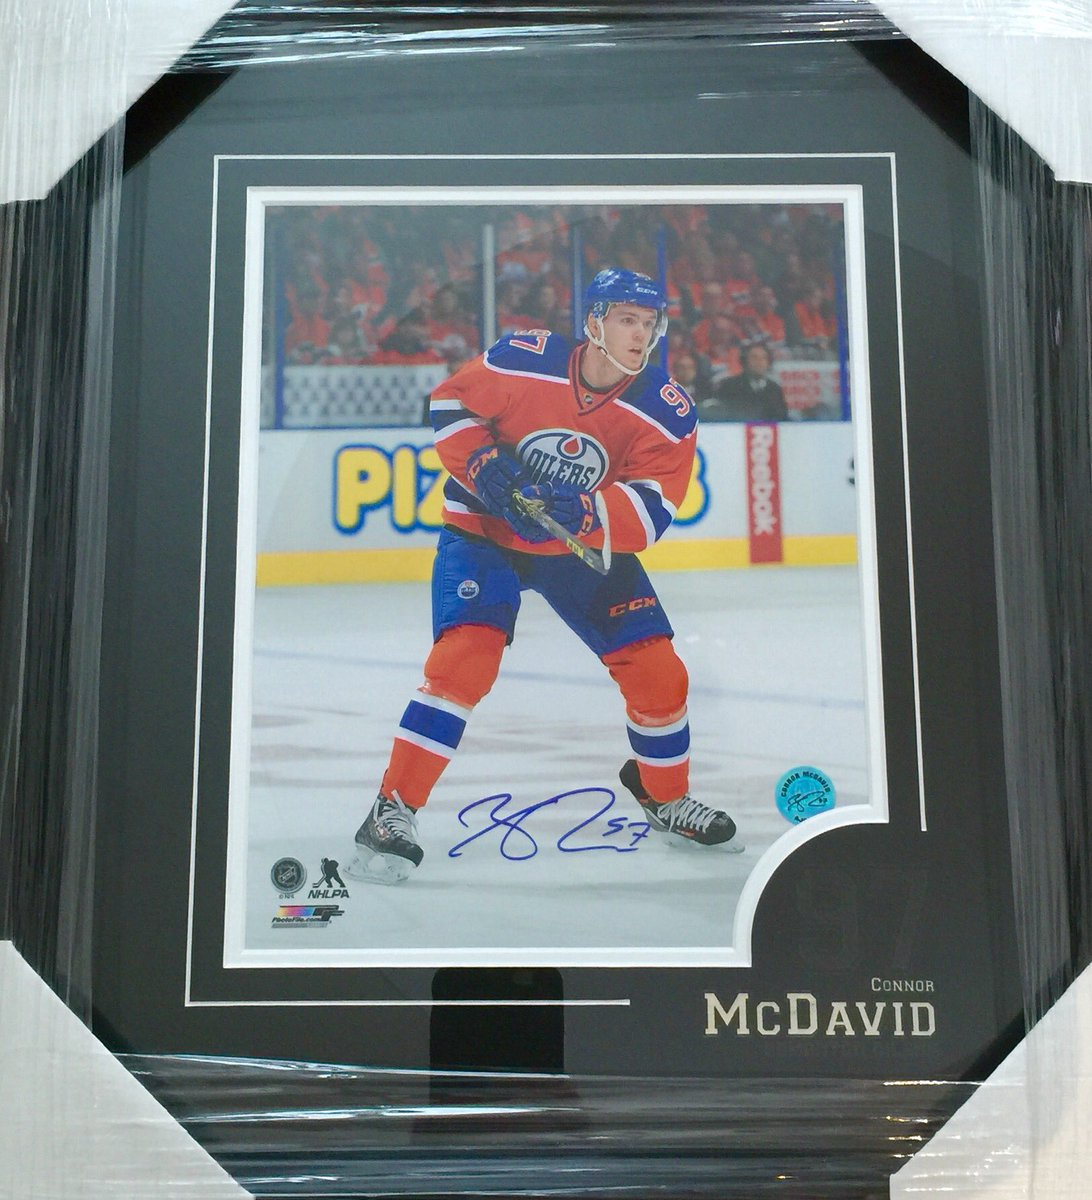 We want to give this signed McDavid photo to one lucky follower! RT & follow to enter, draw is next week. Good luck! https://t.co/7qVgyEQxwR